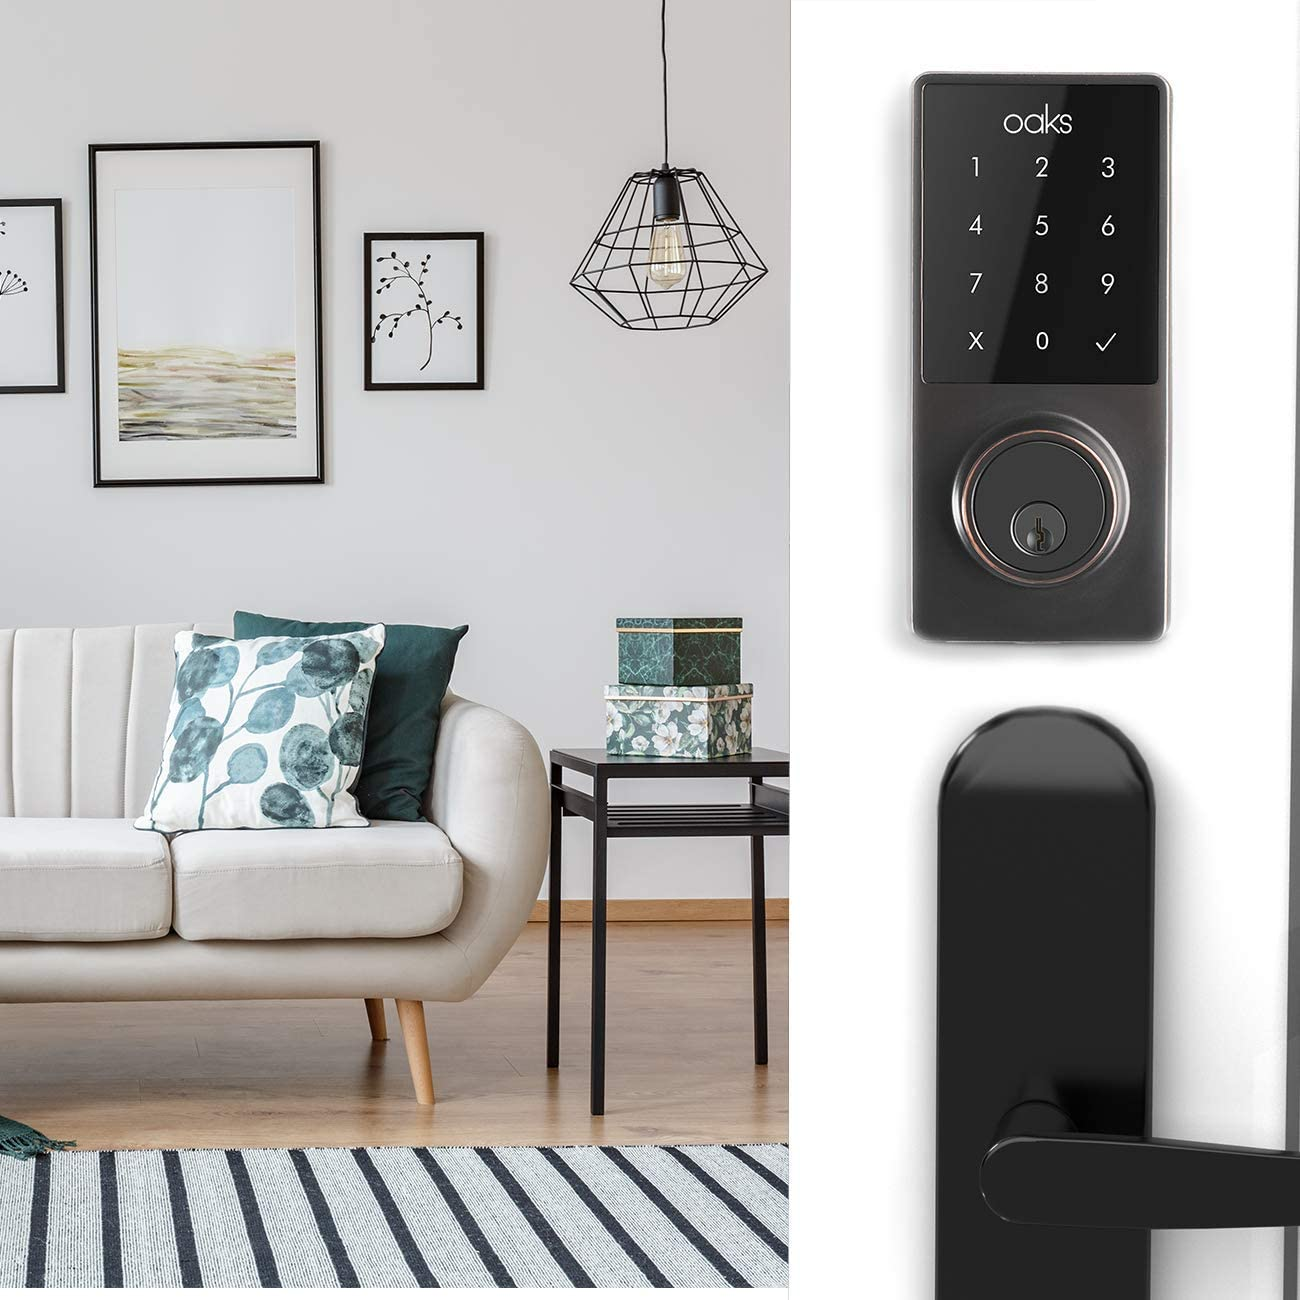 Oaks Smart Lock, Electronic Front Door Deadbolt, Bluetooth, Code and Fob Entry, Keyless Access, Smart Phone App Unlock, Great for Airbnb Vacation Rentals, Easy to Install Black